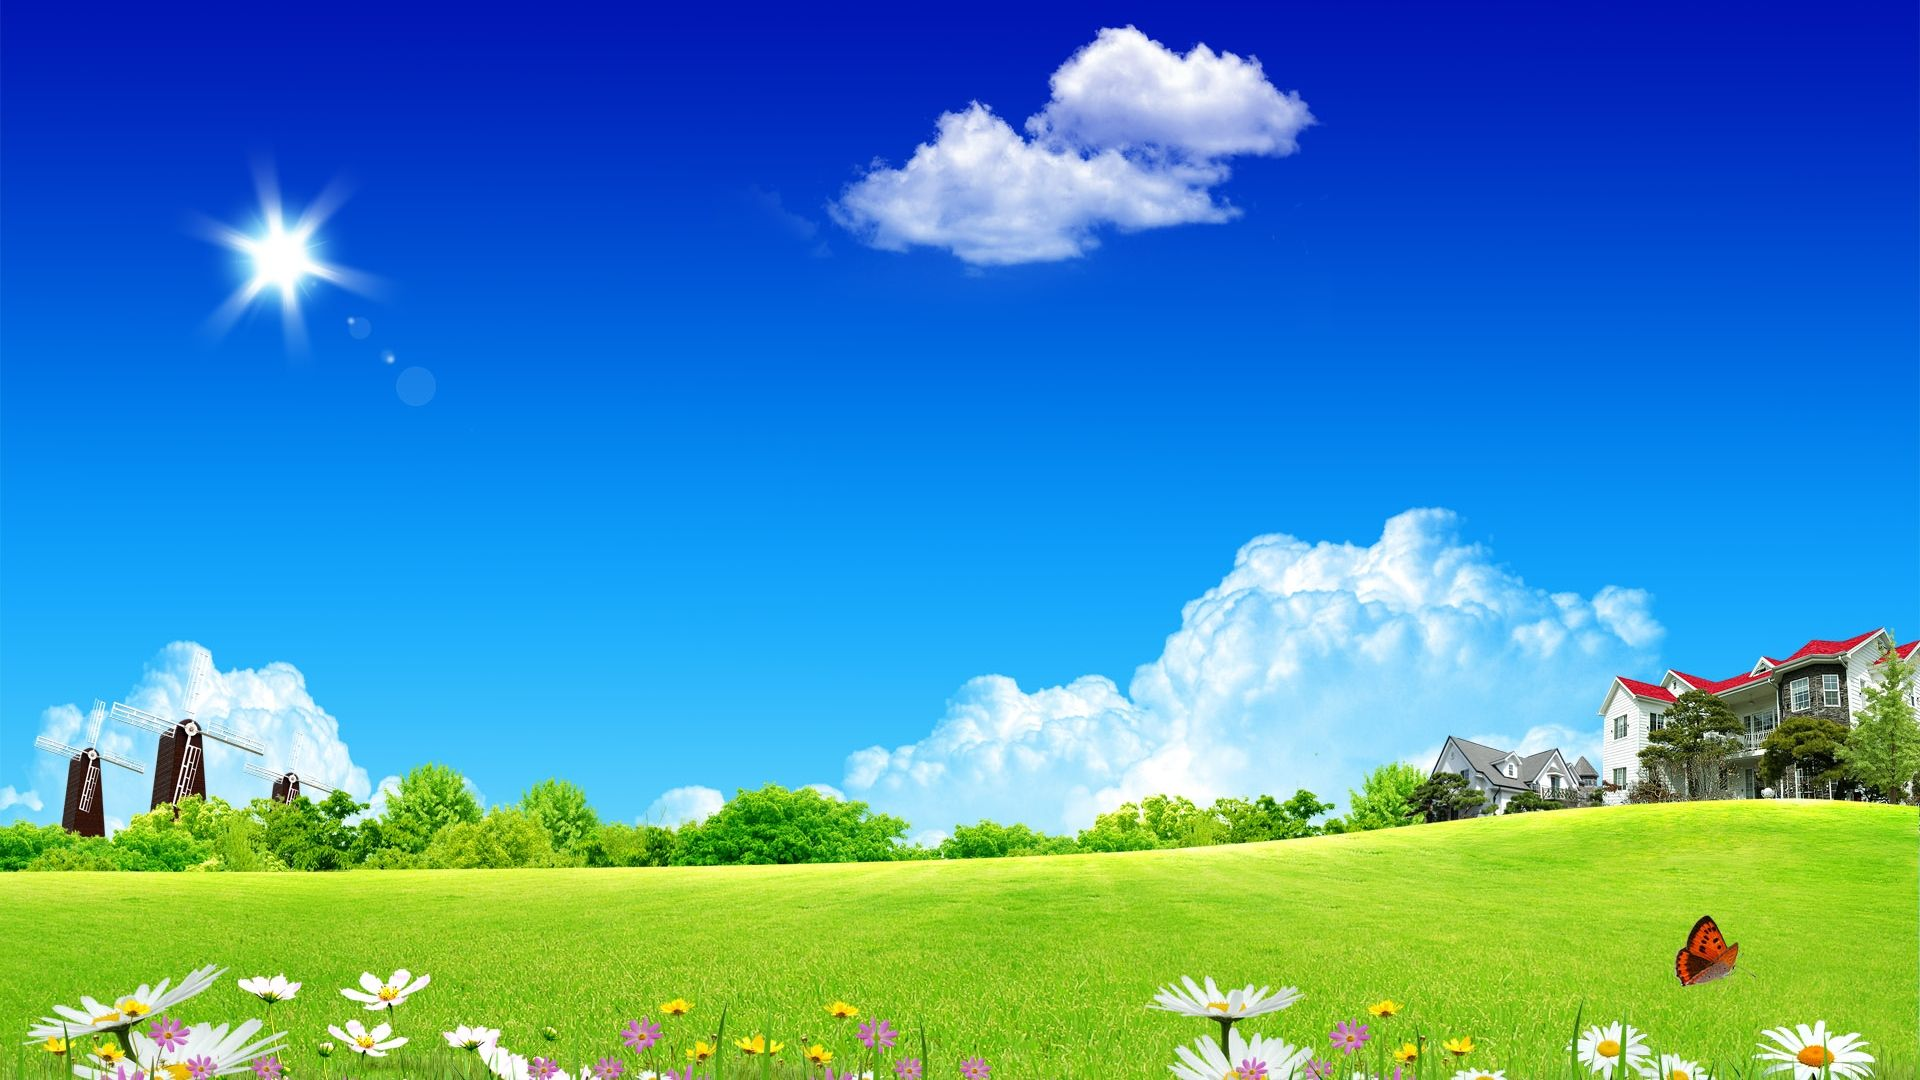 Free Spring Desktop Themes Clean Environment Natural Scenery Nature Wallpaper Scenery